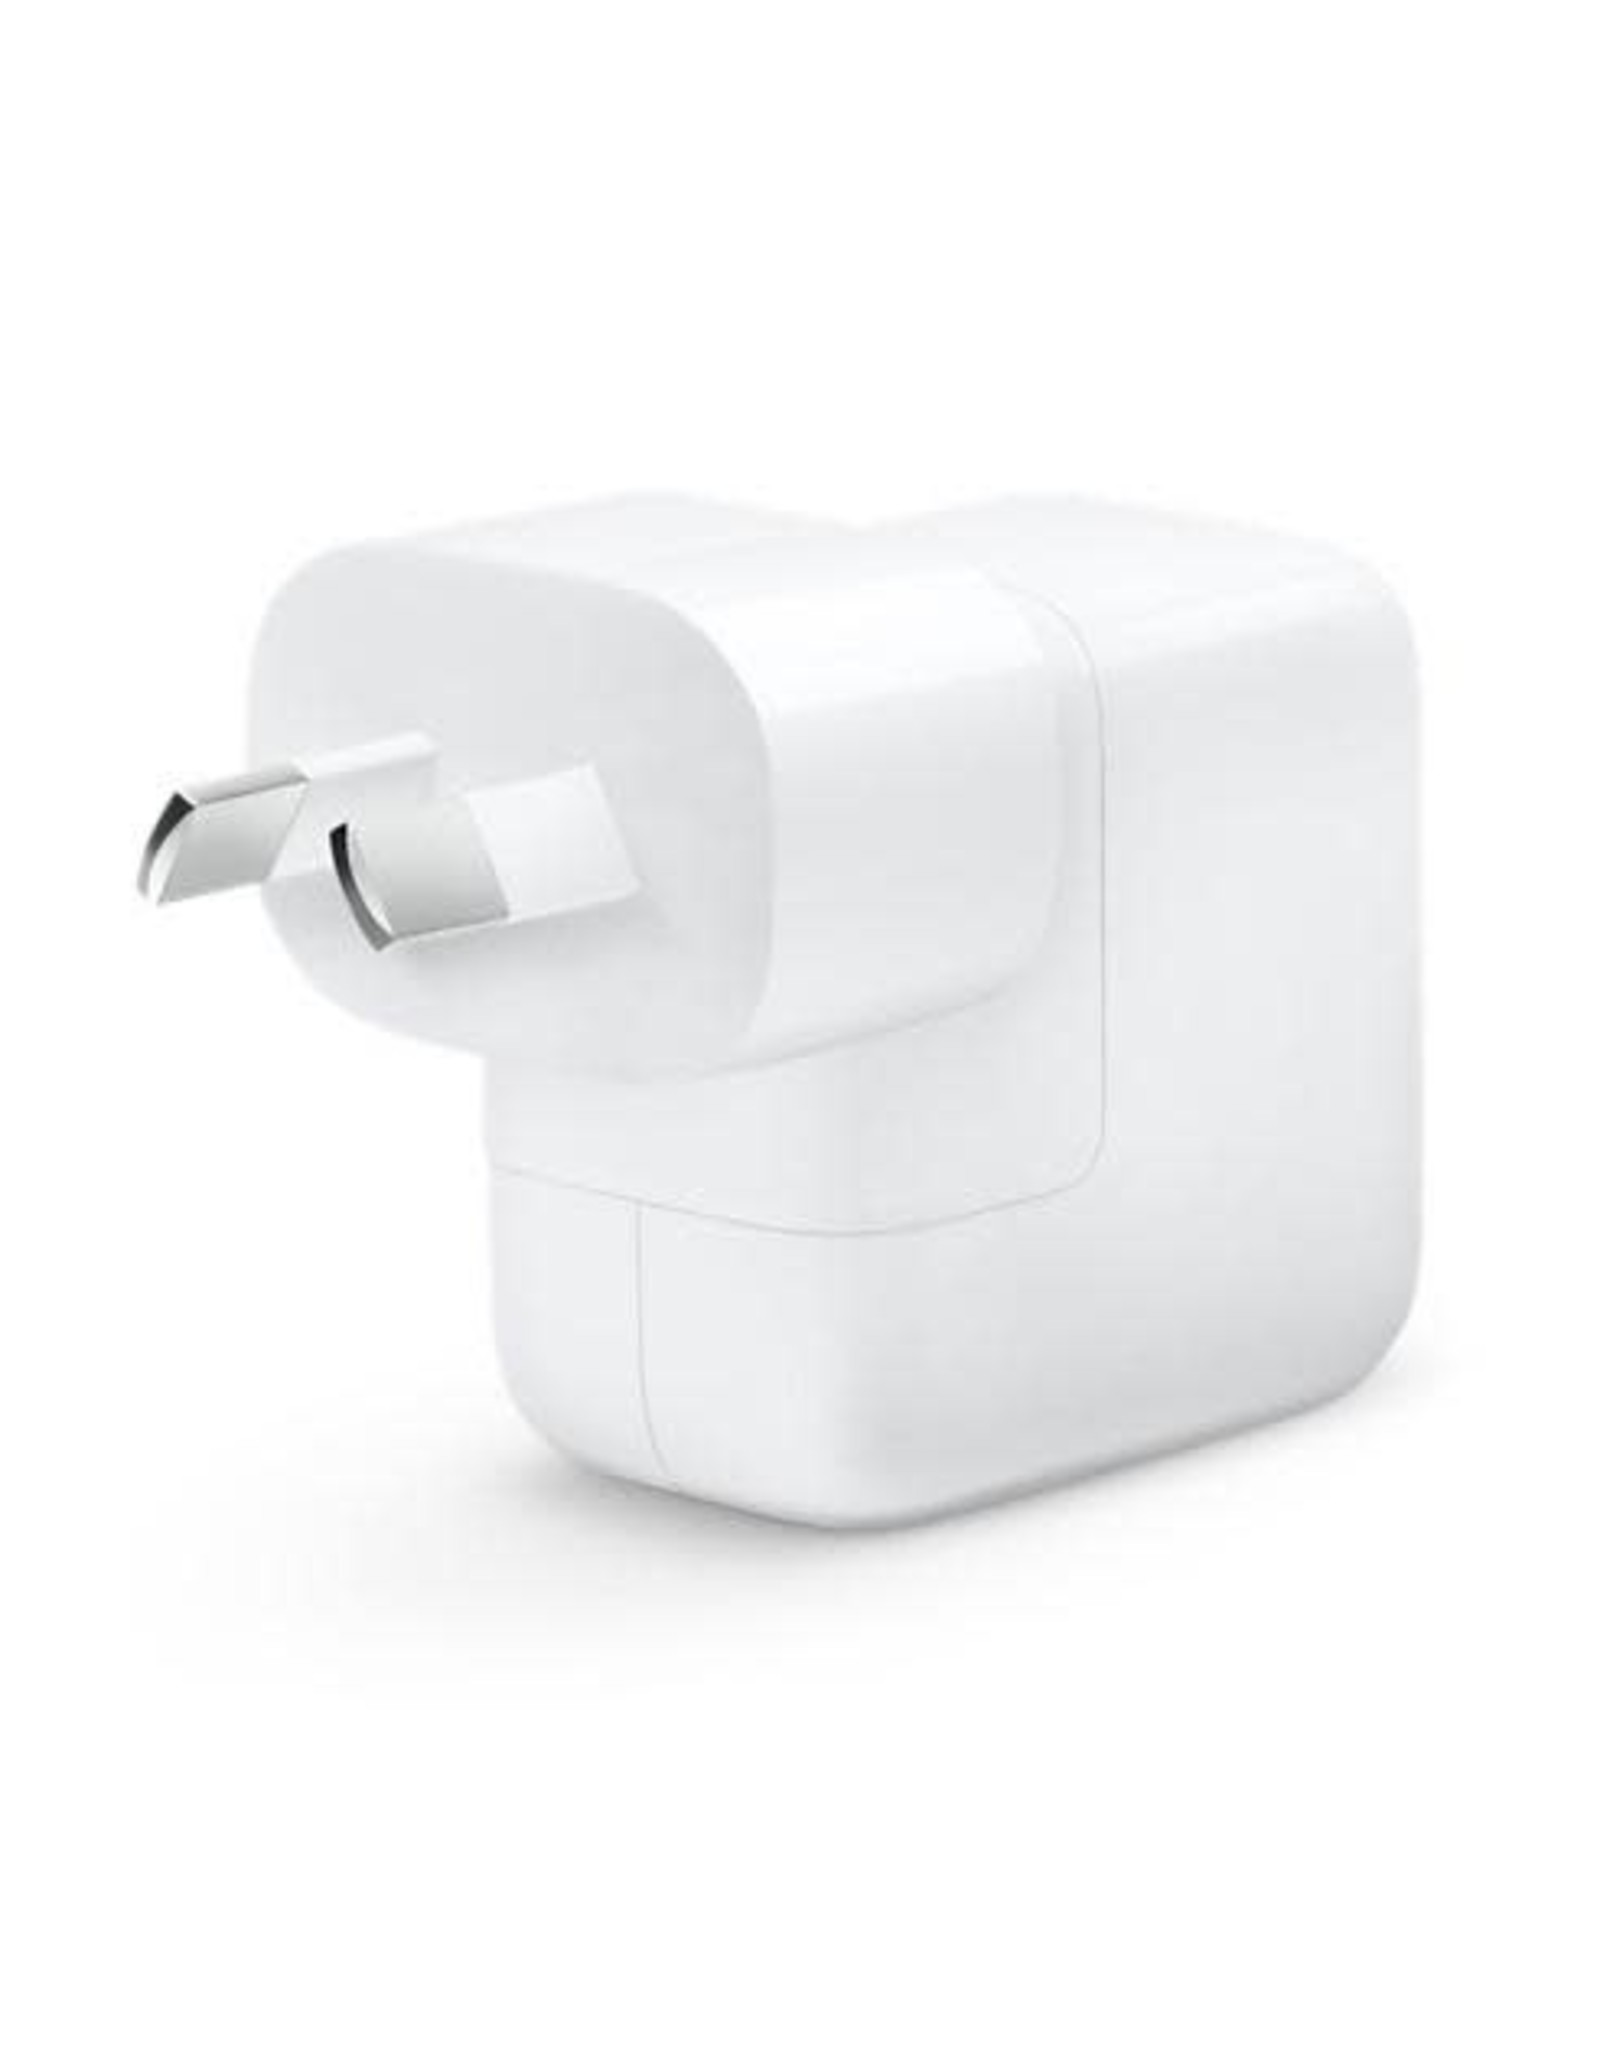 Apple Apple 12W USB Power Adapter